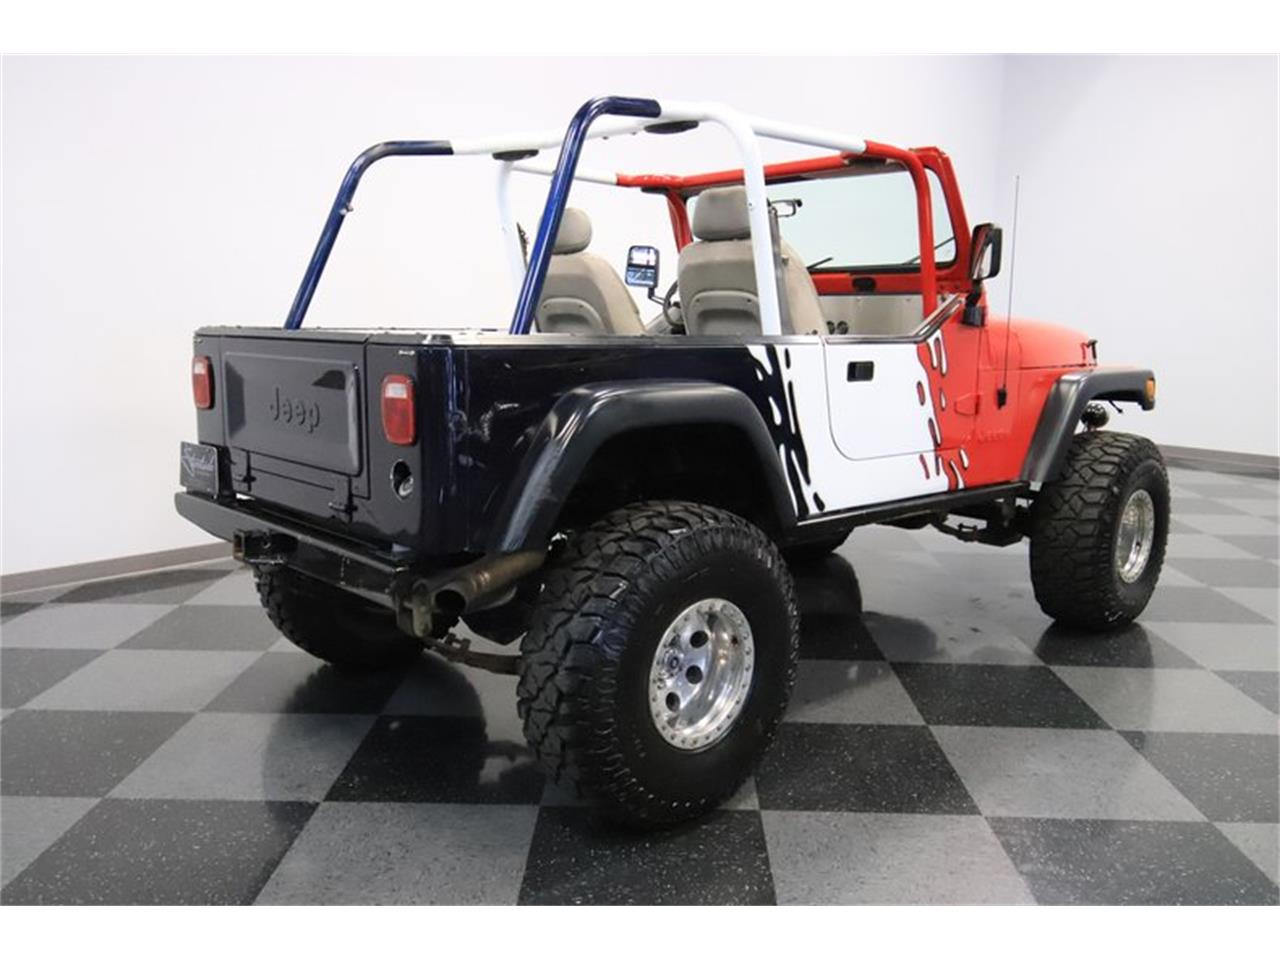 Large Picture of '83 CJ8 Scrambler located in Arizona - $36,995.00 Offered by Streetside Classics - Phoenix - Q5HM